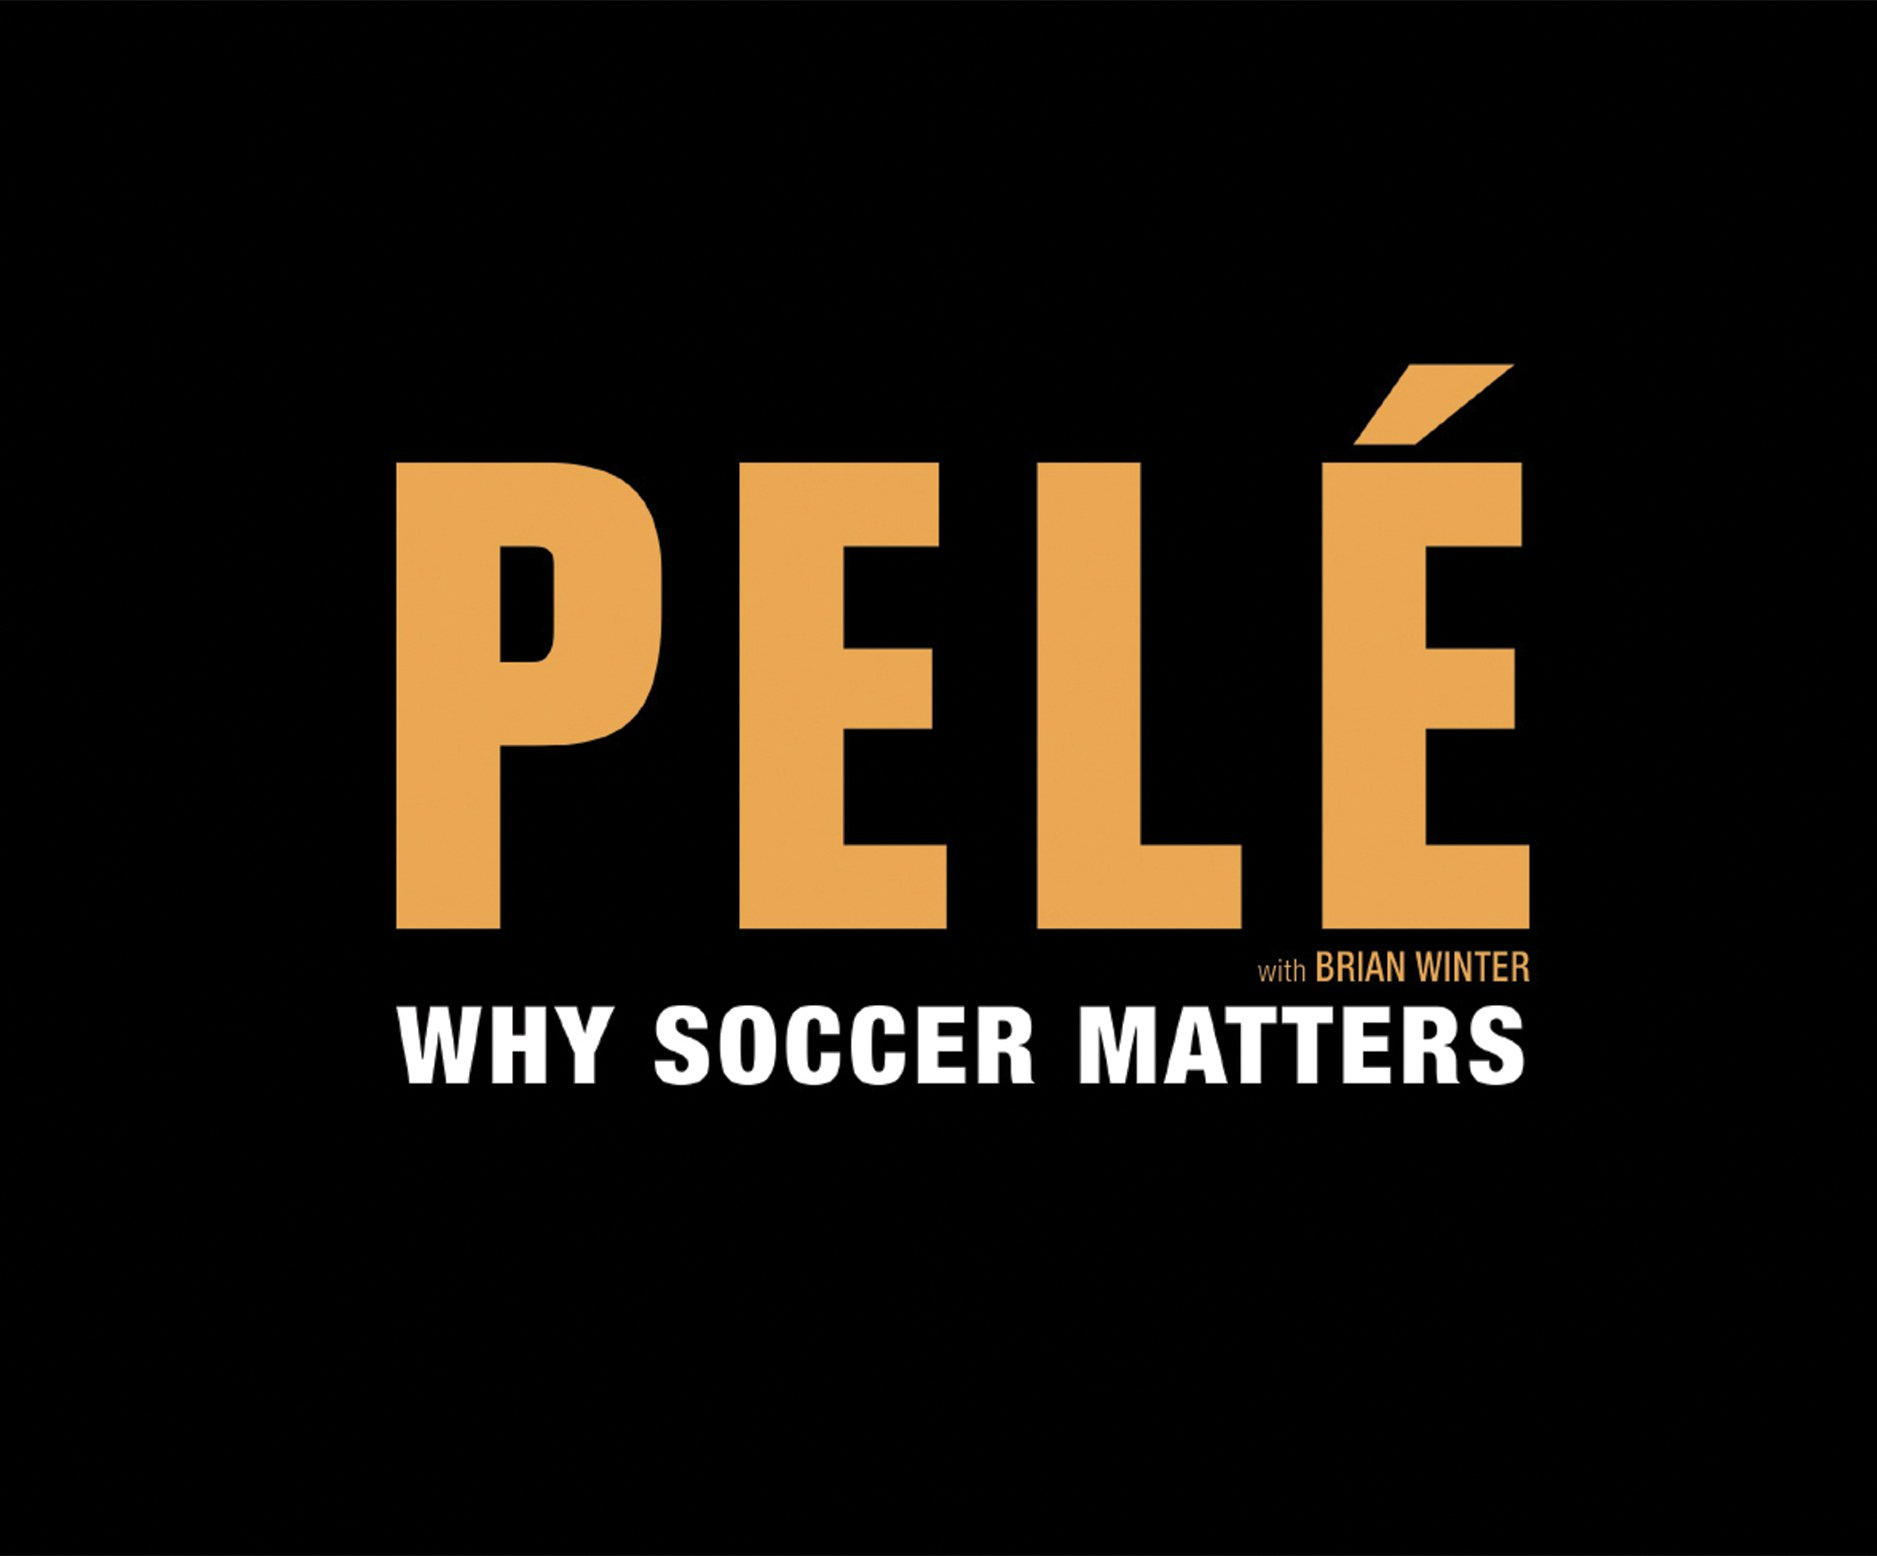 Why Soccer Matters